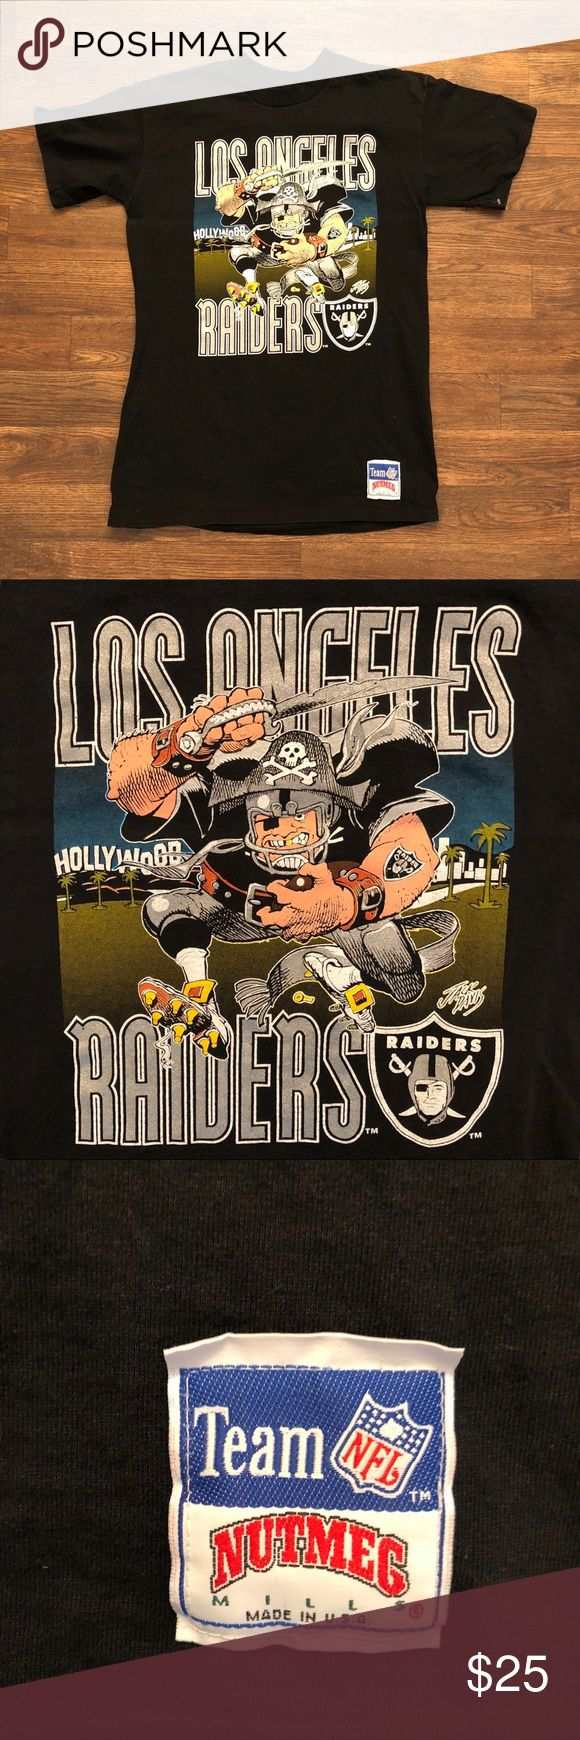 LA Raiders Cartoon NFL T-Shirt sz. Medium Good condition States on the shirt size XL but compared it to my Hot Rod shirt, and it compares to a size Medium. If you need measurements let me know. No stains, rips, or dirt marks. Shirts Tees - Short Sleeve